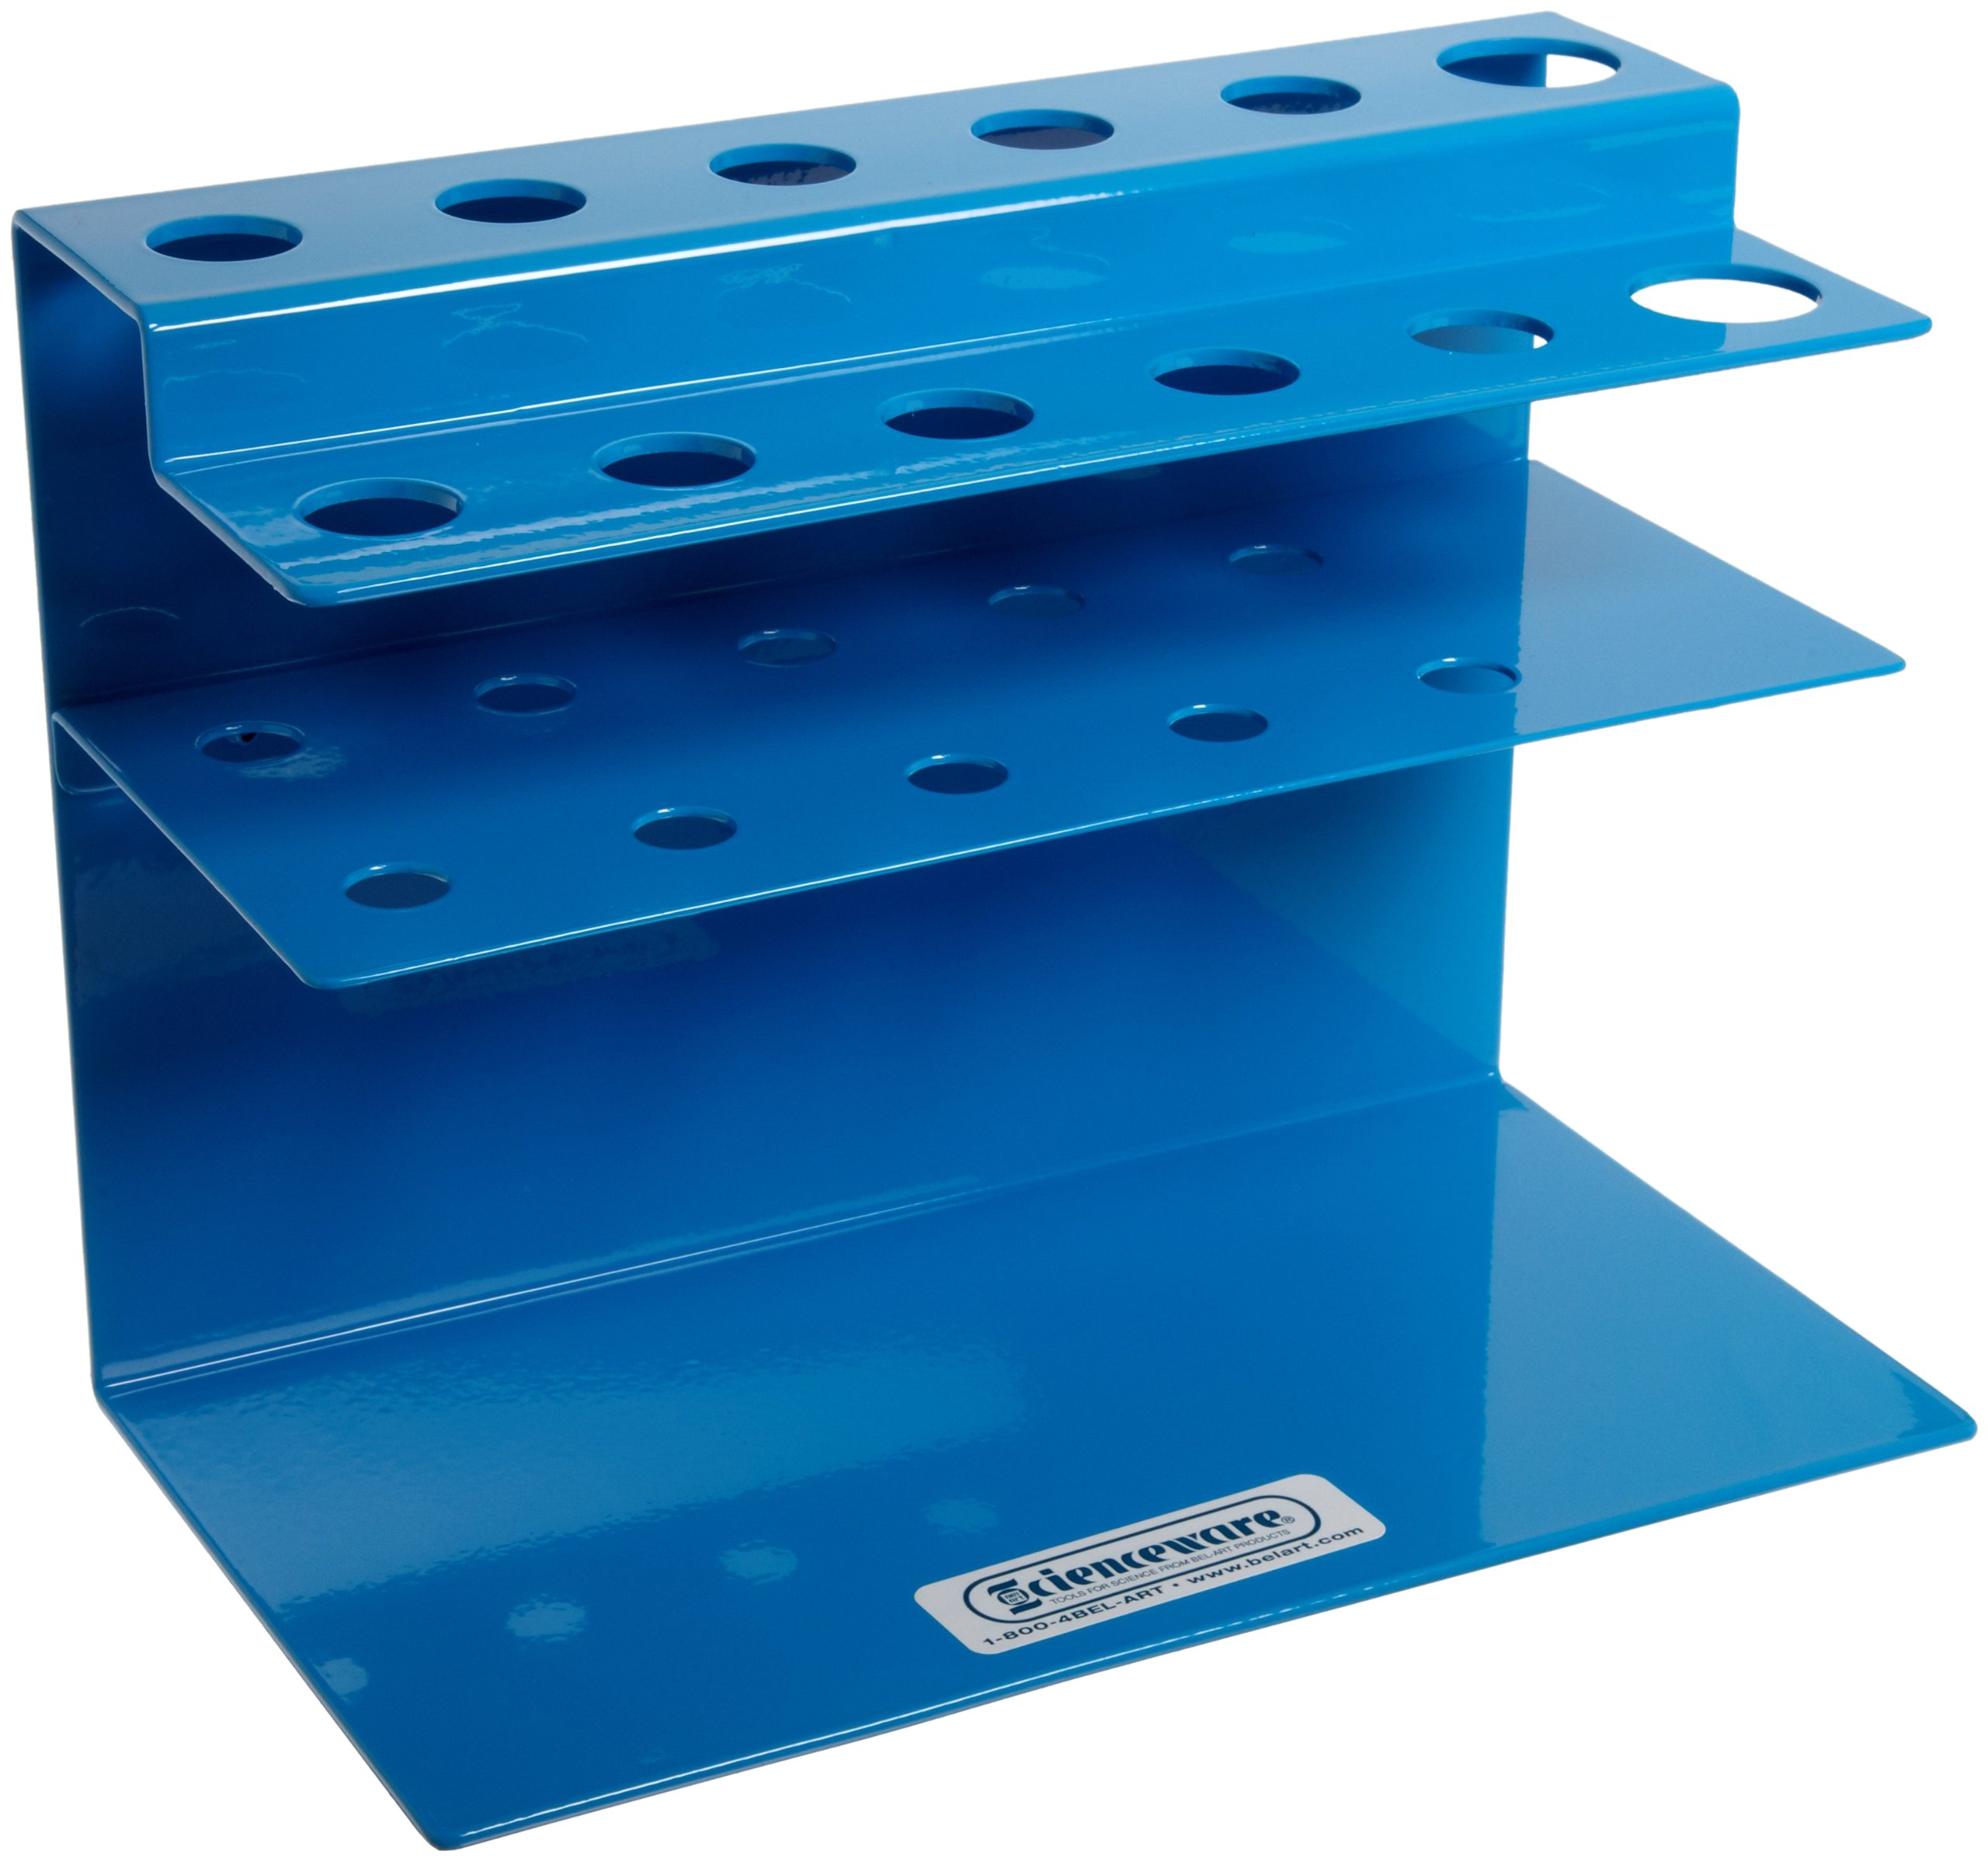 Bel-Art Poxygrid Microliter Pipettor Rack; 10 Places, 9 x 5 x 6¾ in, Aluminum (H18962-0000)